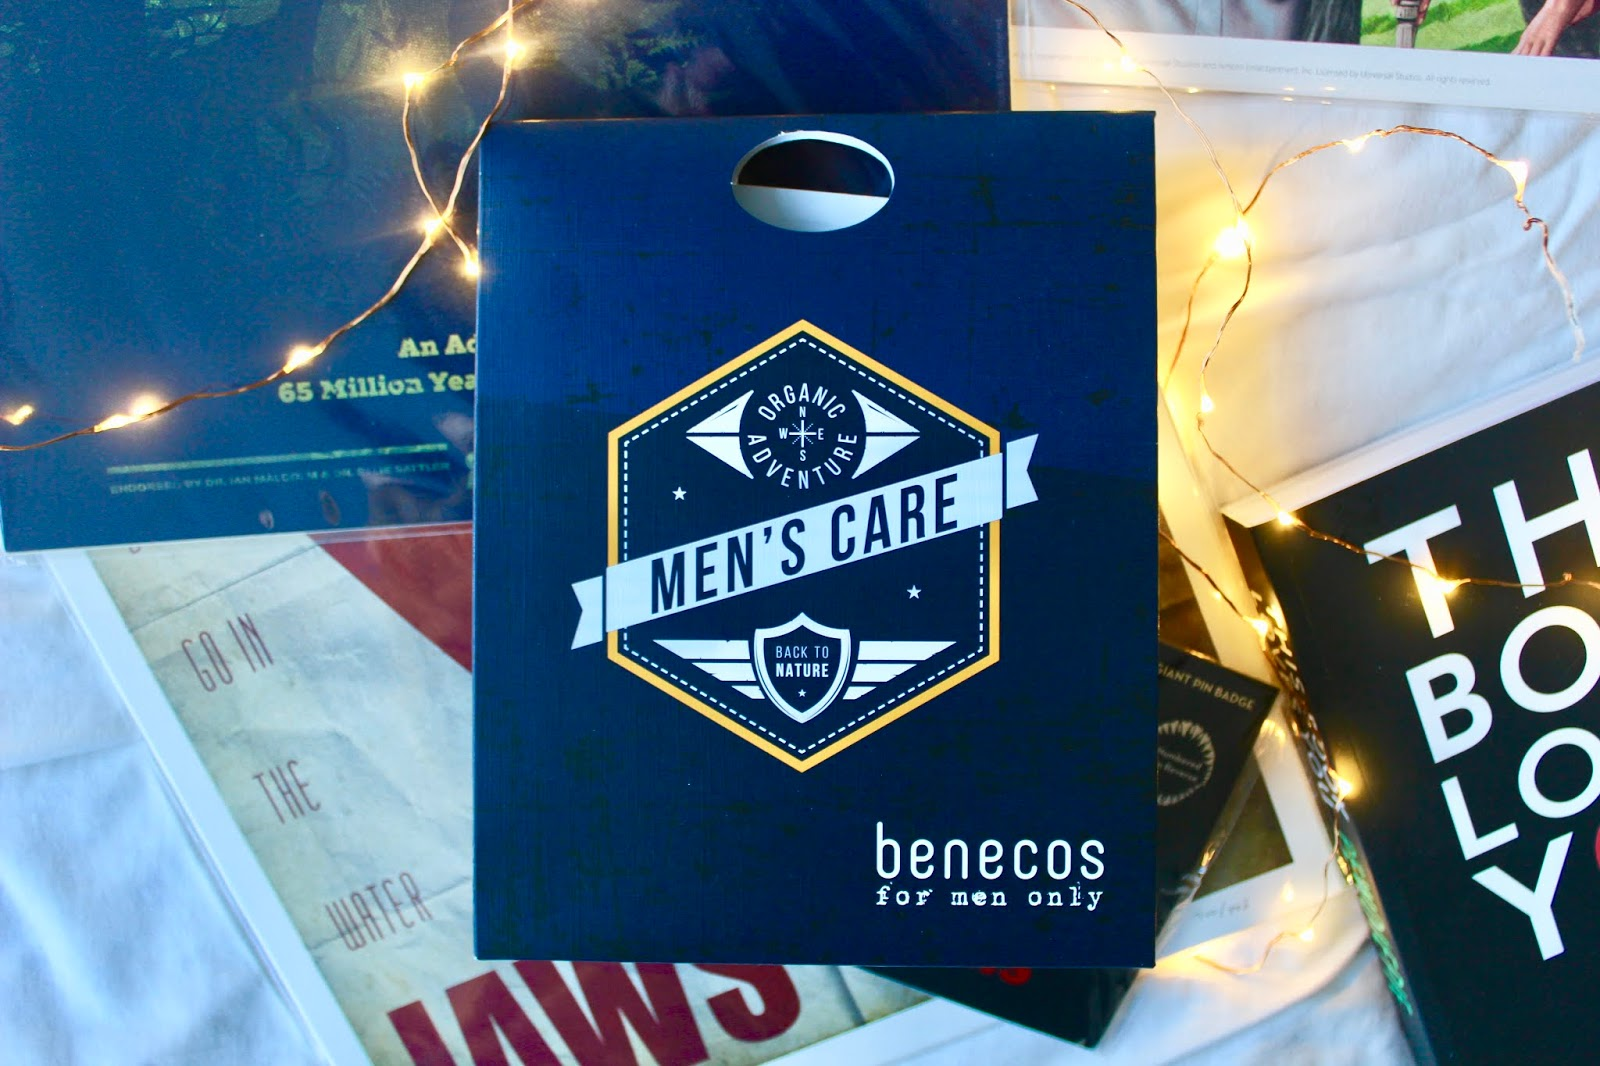 A benecos 'for men only' gift set